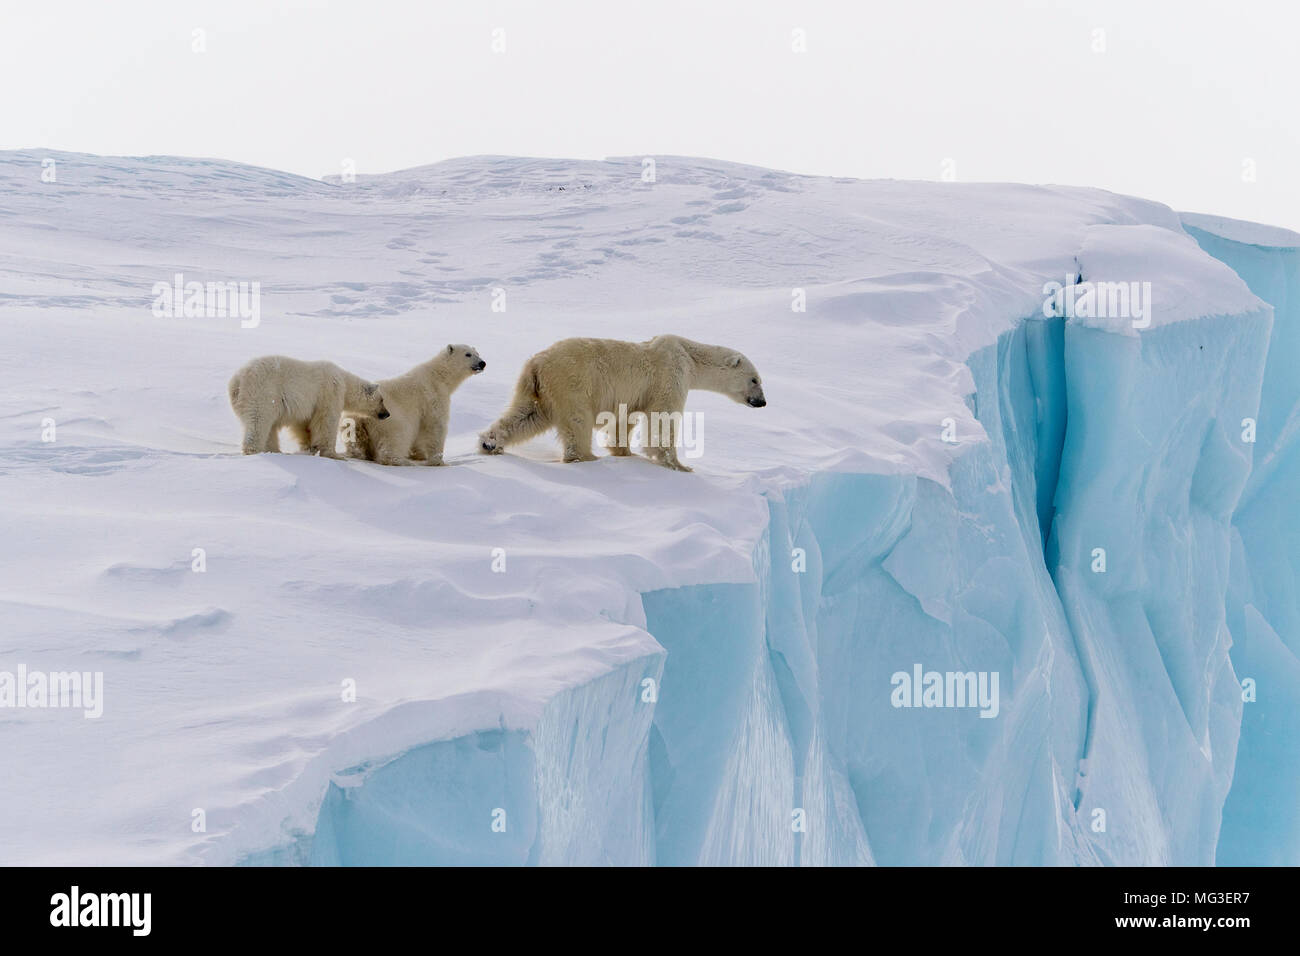 Mother polar bear and 2 yearling cubs lwalking on an iceberg, Baffin Island, Canada, nunavut, arctic - Stock Image